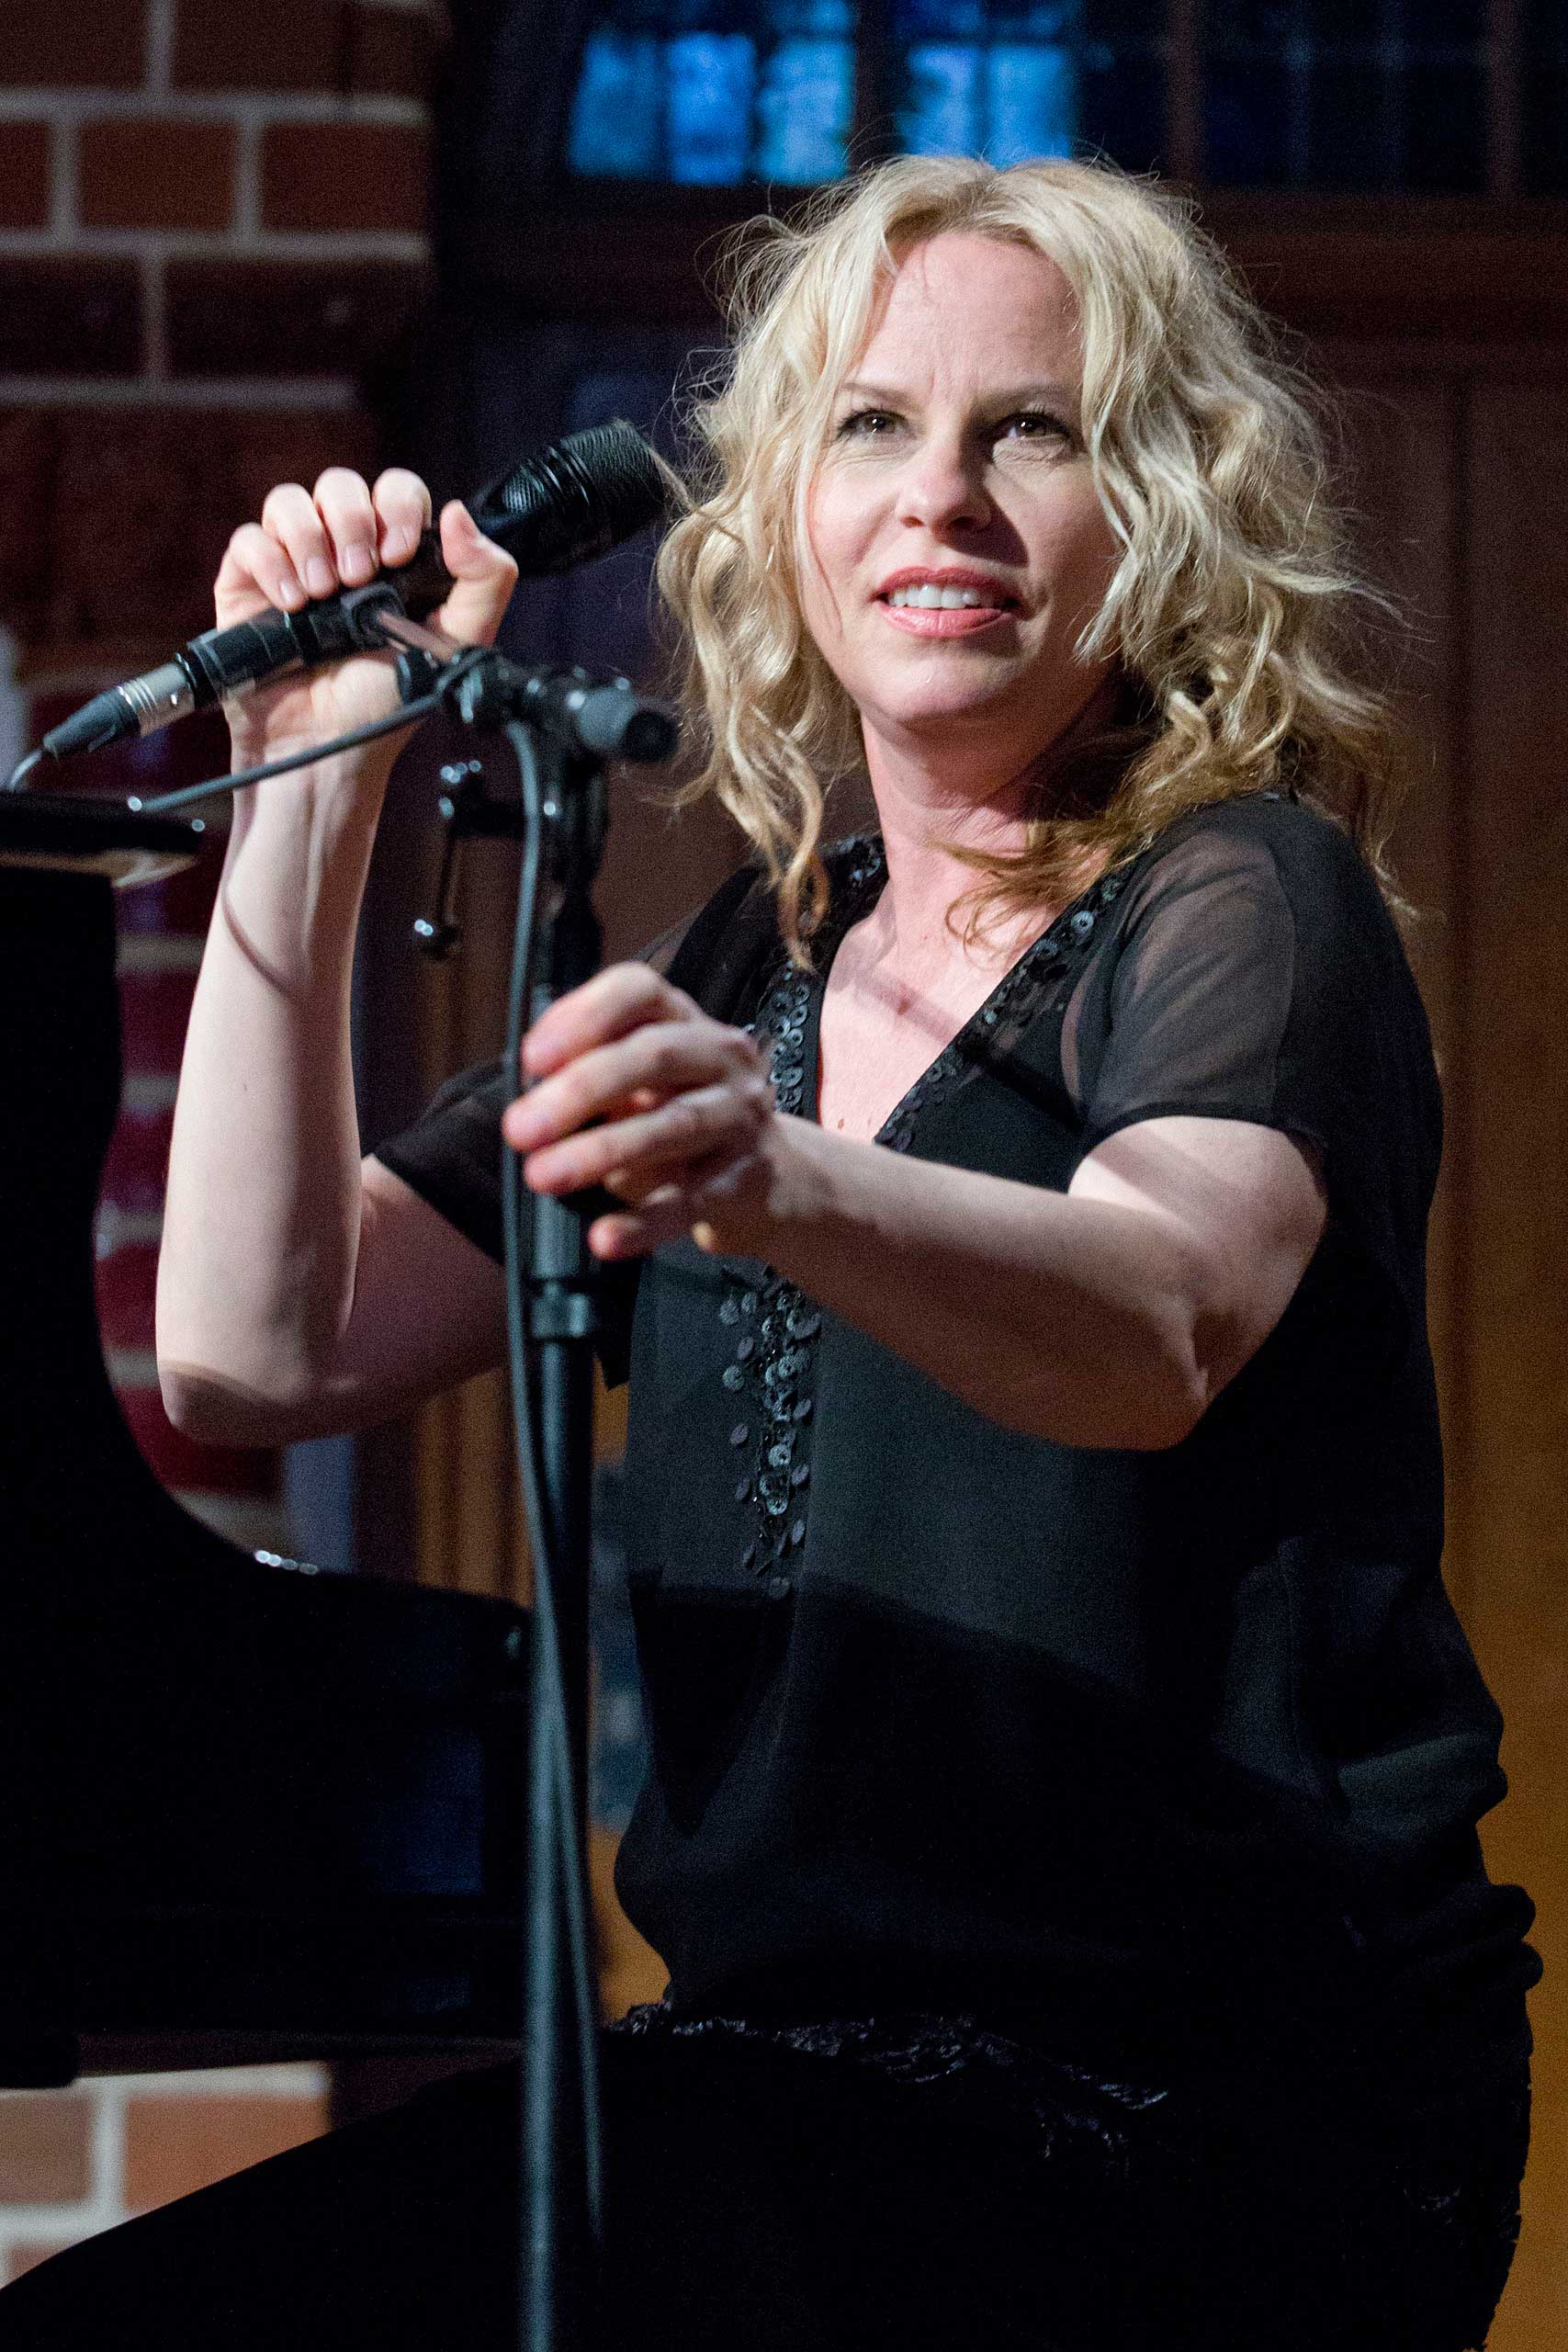 Vonda Shepard performs live during a concert at the Passionskirche on May 8, 2014 in Berlin.